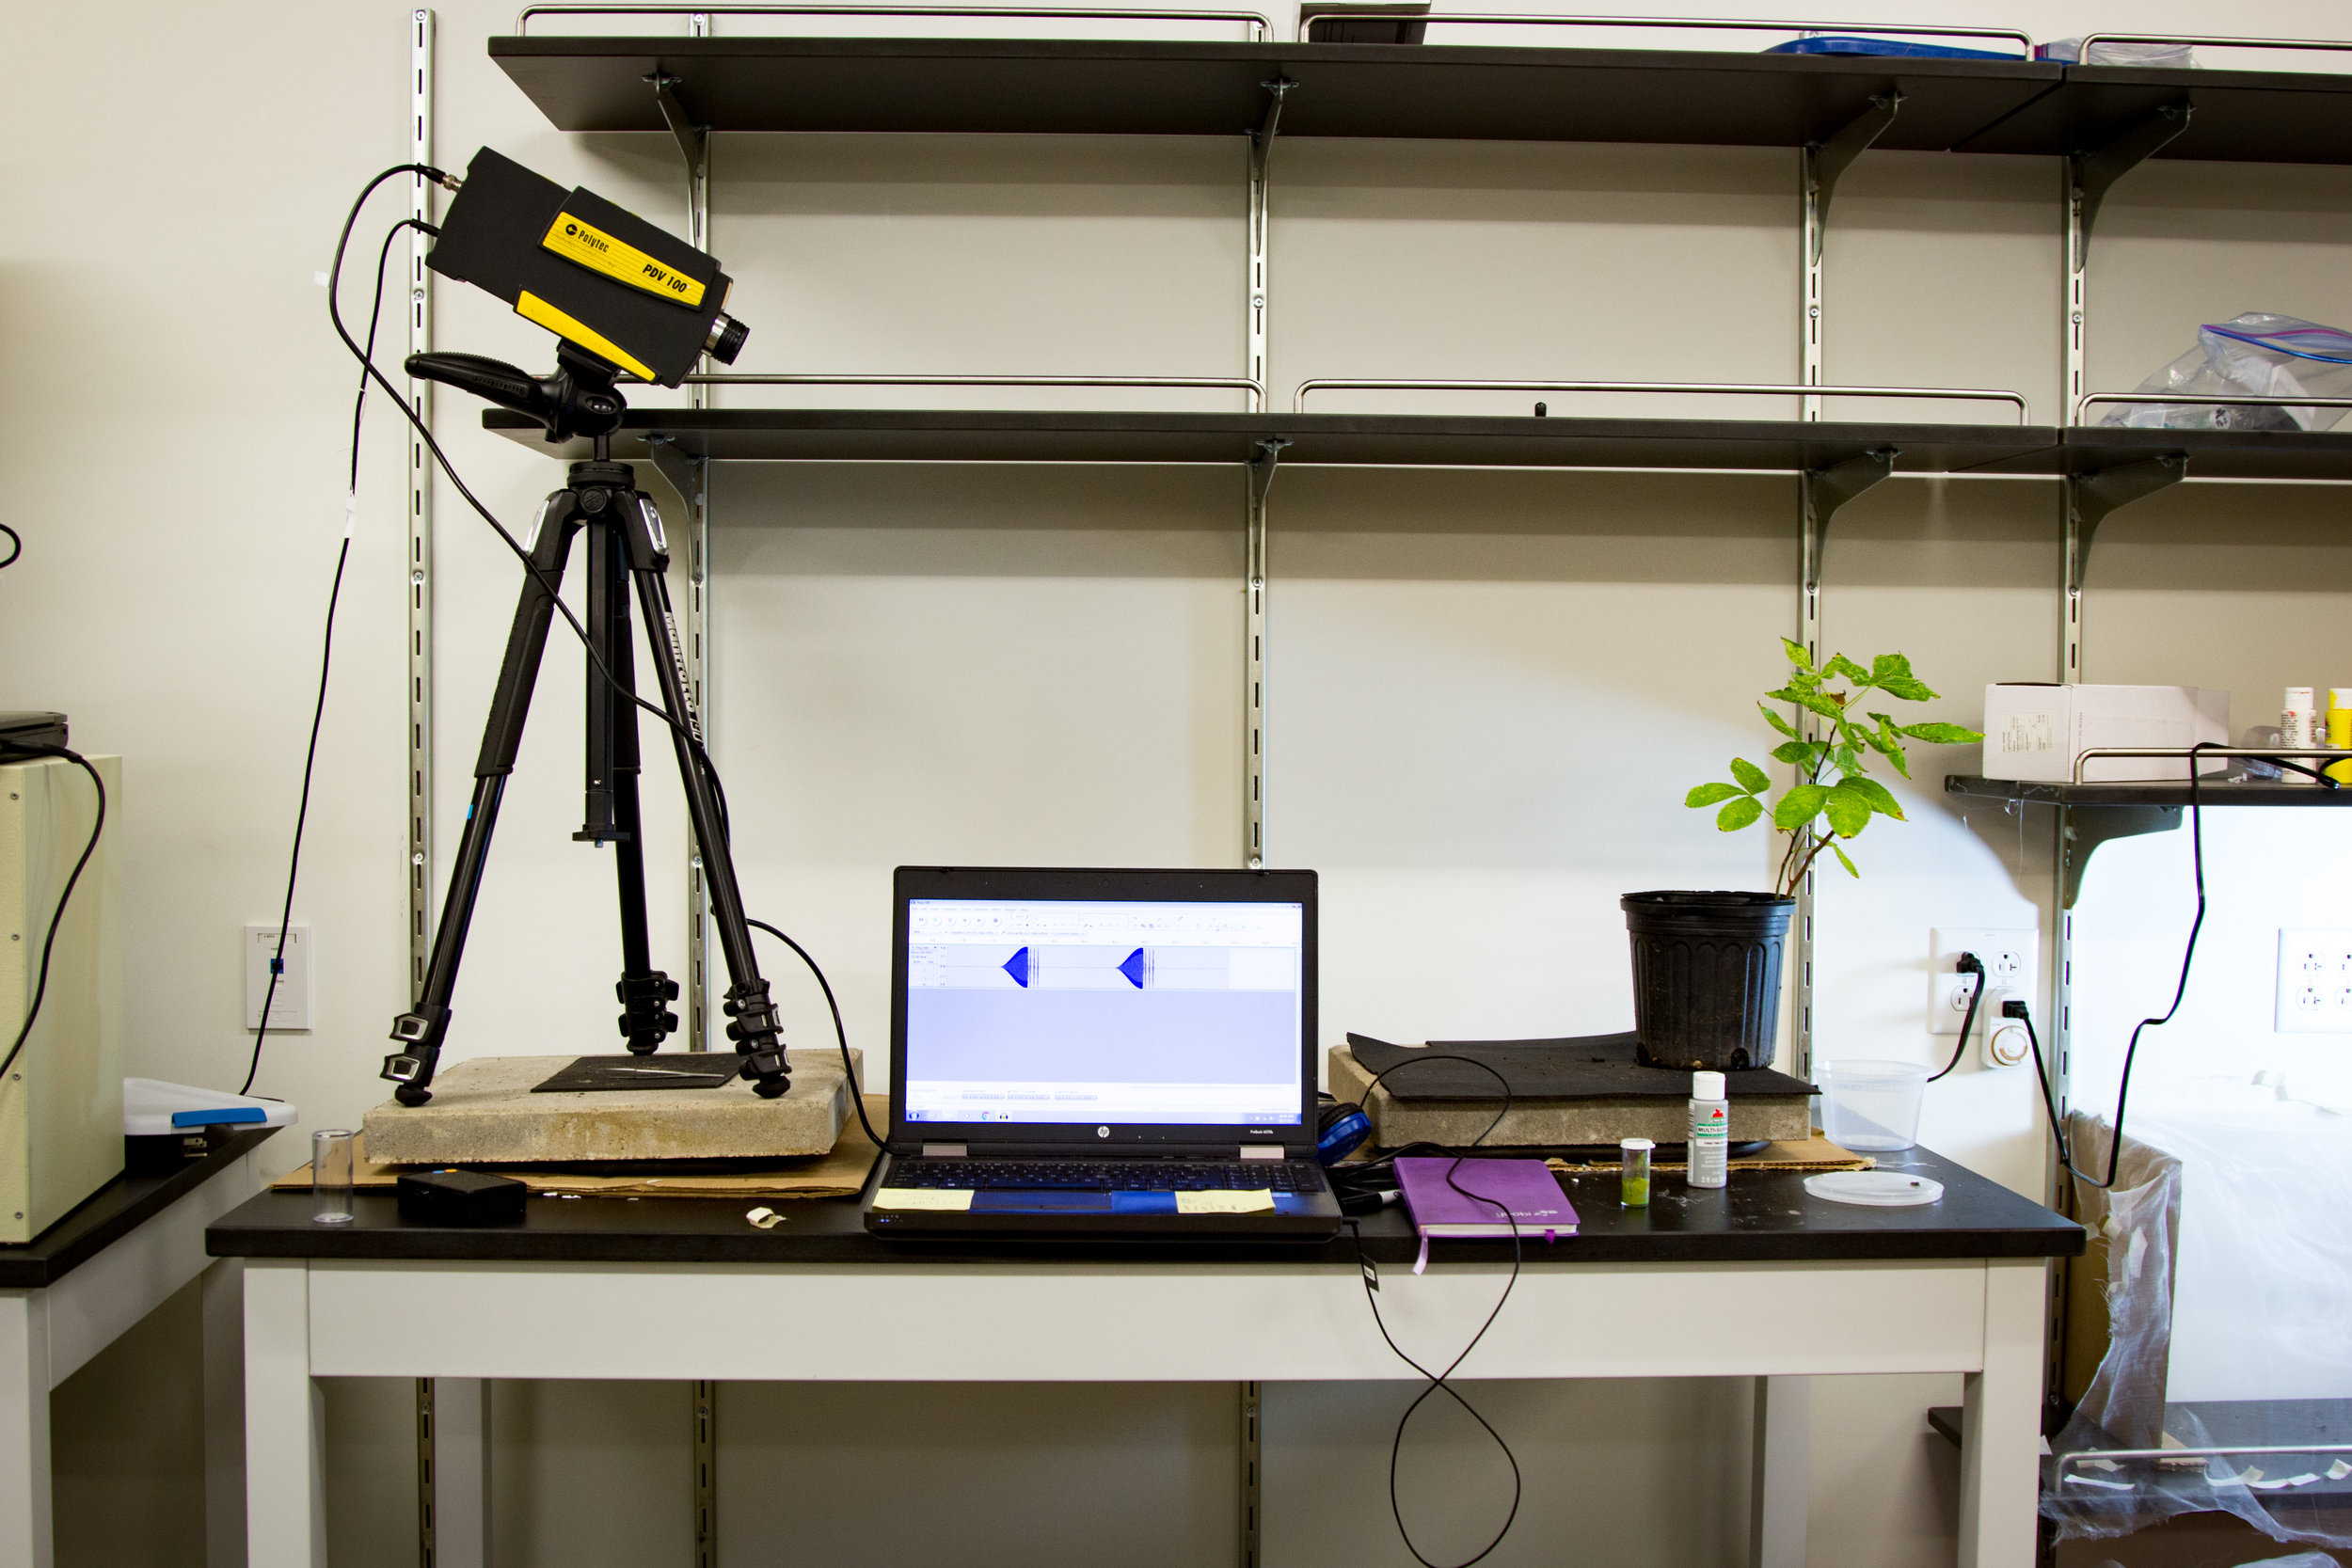 To study vibrational signals, our lab uses a specialized laser recording device to capture the sounds of insect movement on the stems and leaves of plants. Photo:  Impact Media Lab